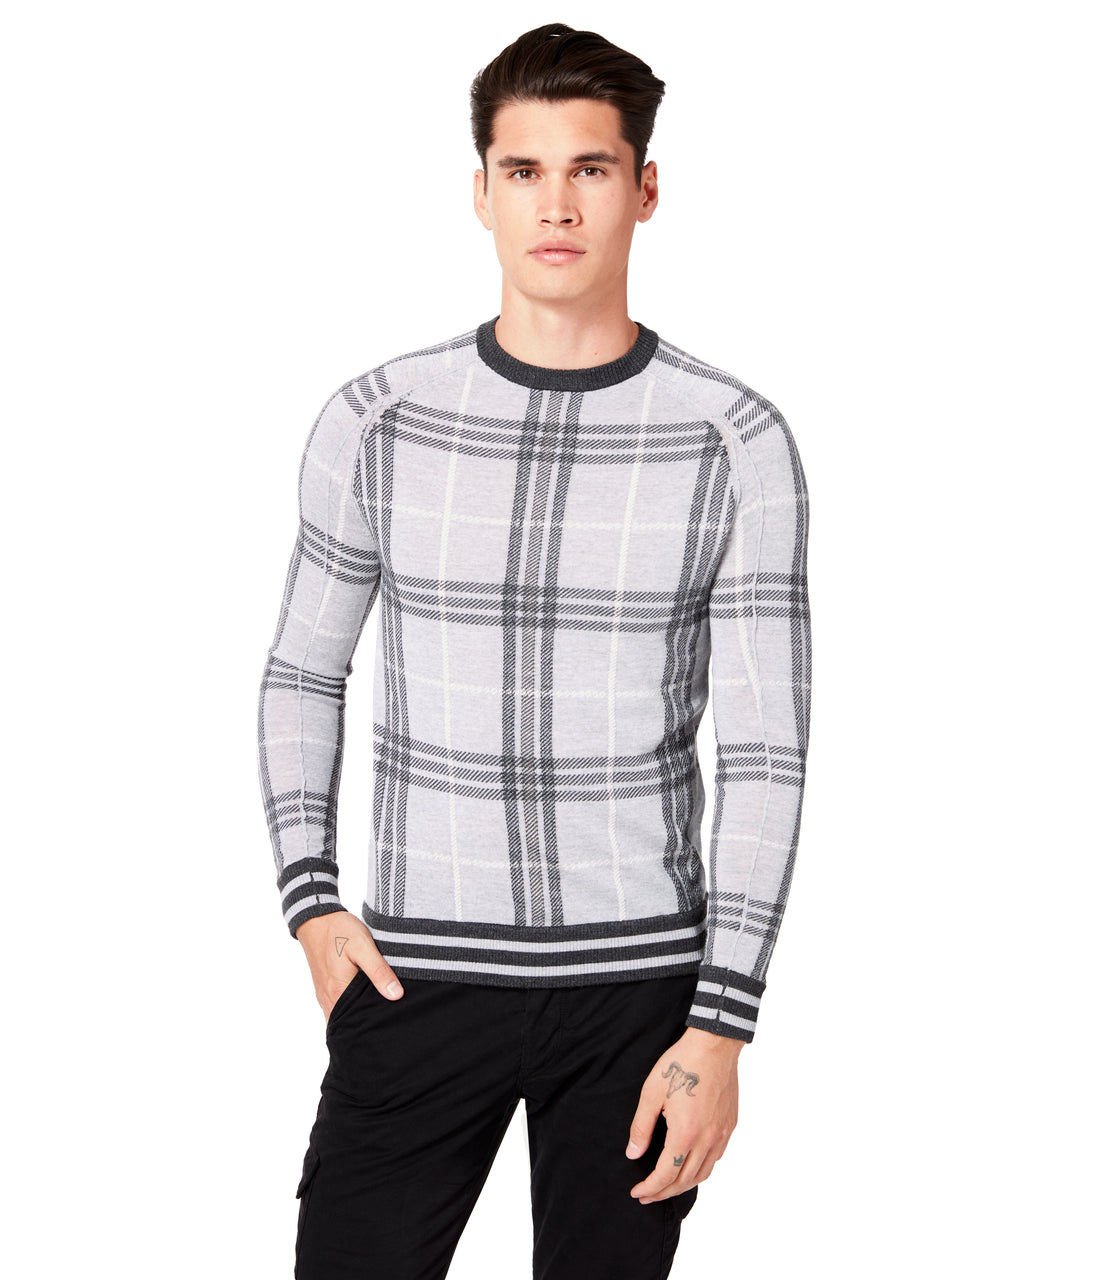 MVP Crew Intarsia Plaid Sweater - Grey - Good Man Brand - MVP Crew Intarsia Plaid Sweater - Grey